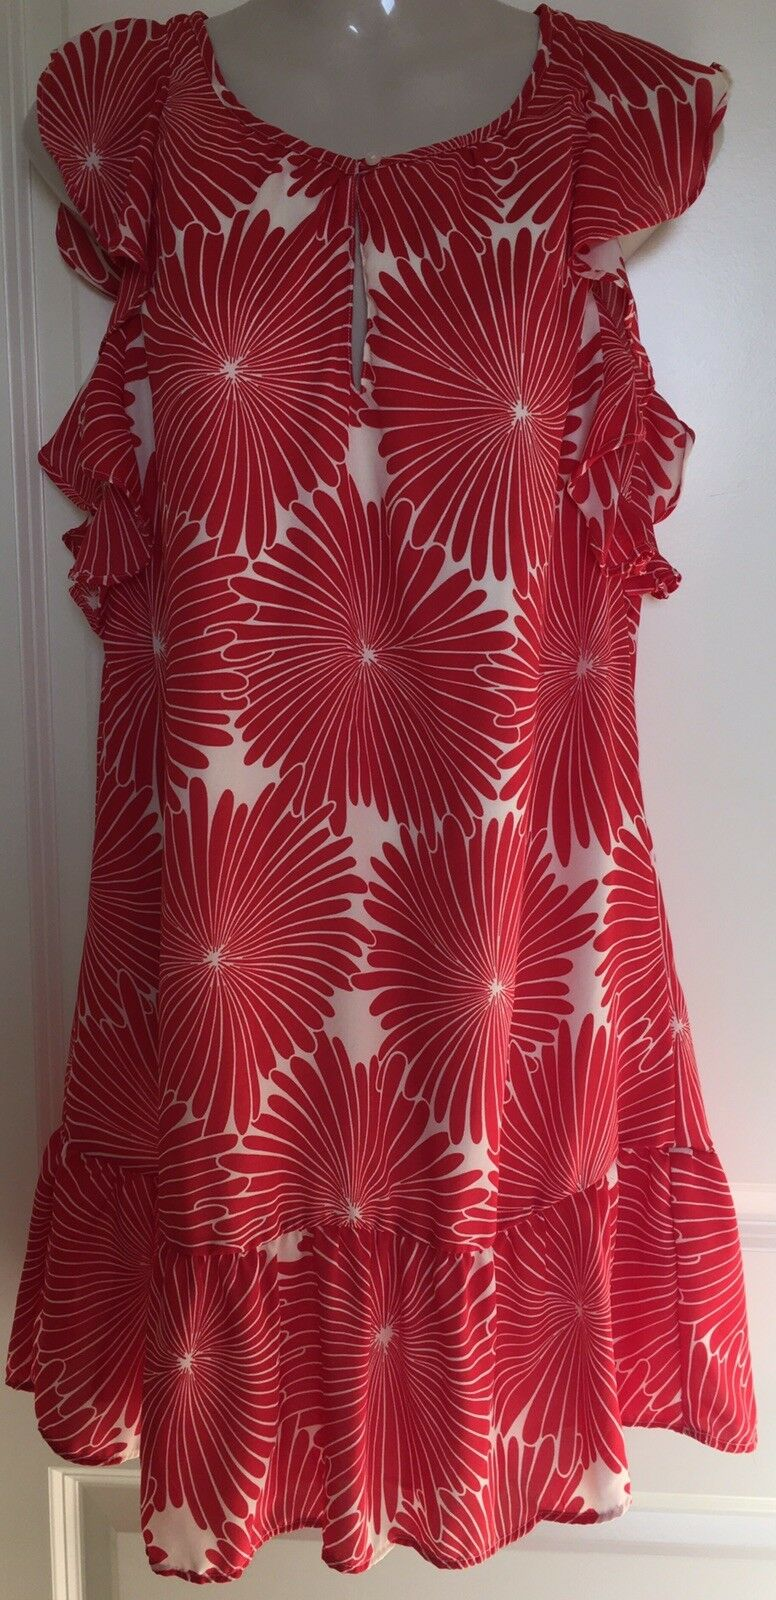 J Crew Dress XS X-Small Printed Flutter Sleeve Red Floral NWT  89 j0841  NEW